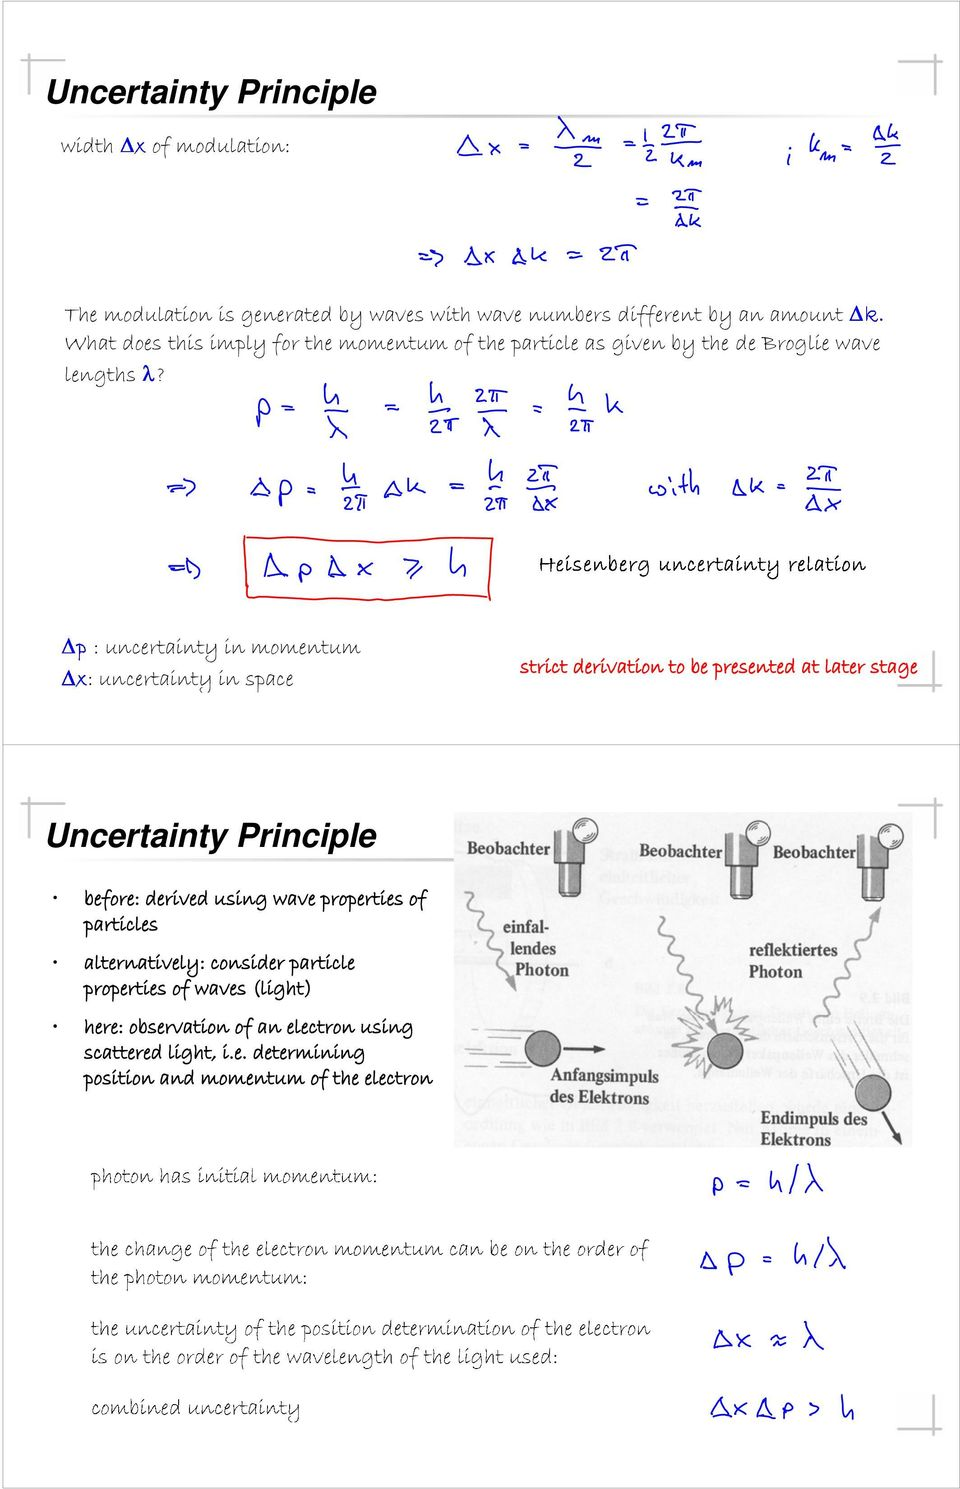 : uncertainty in momentum : uncertainty in space strict derivation to be presented at later stage Uncertainty Principle before: derived